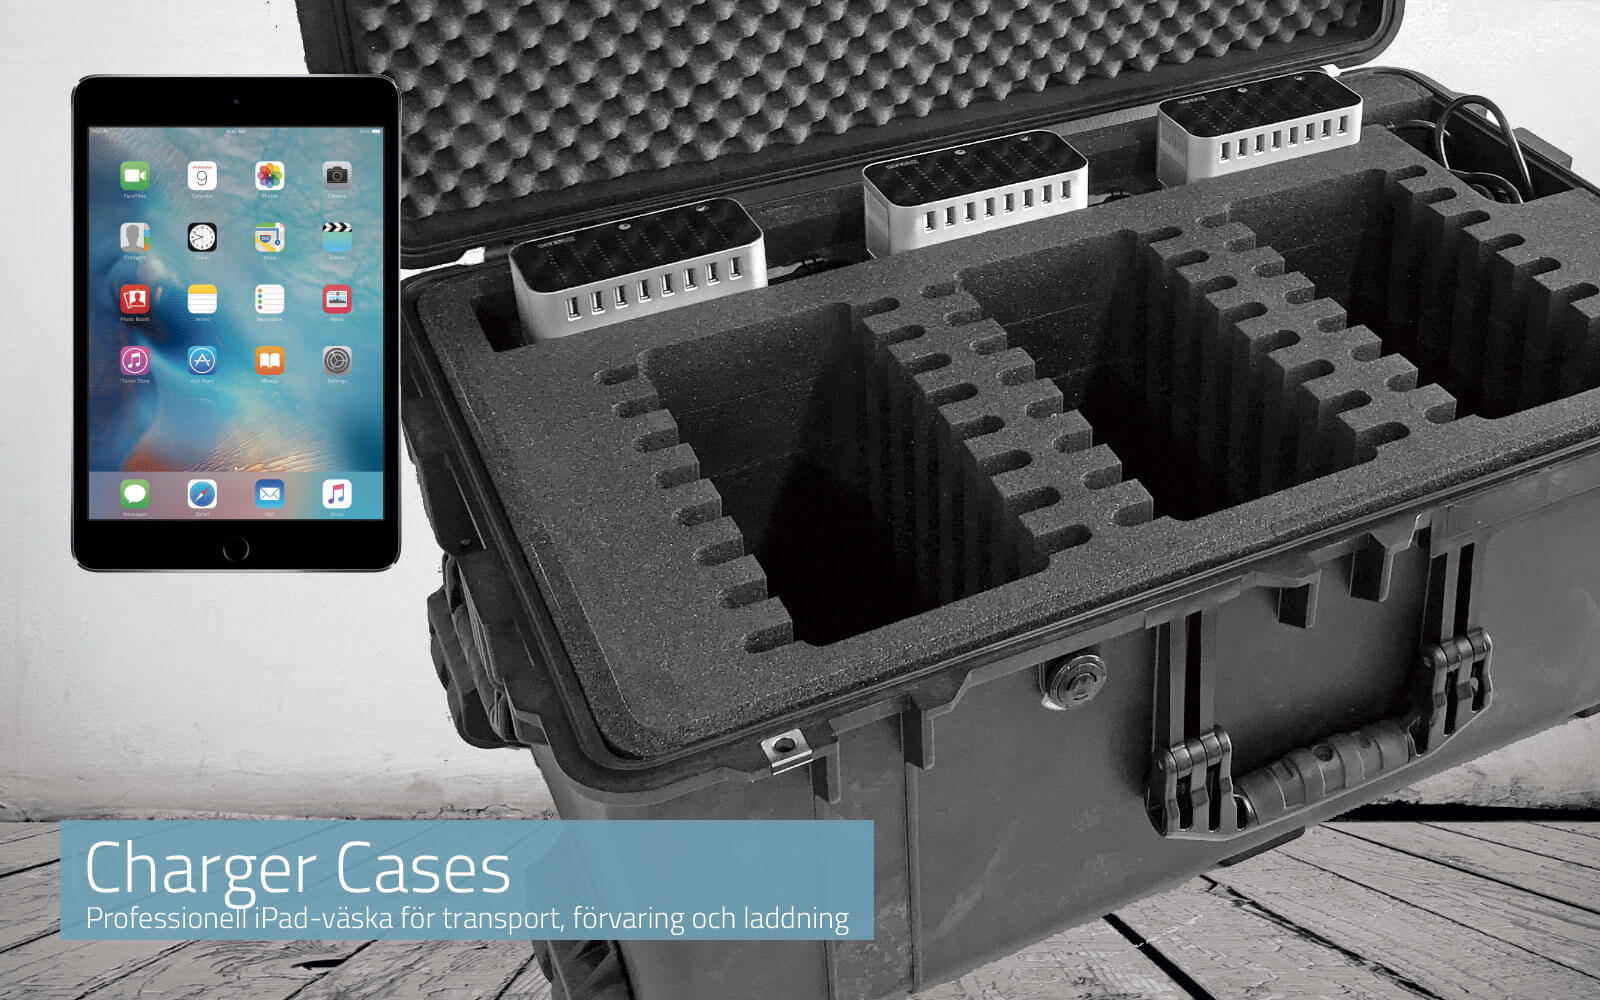 Charger Cases